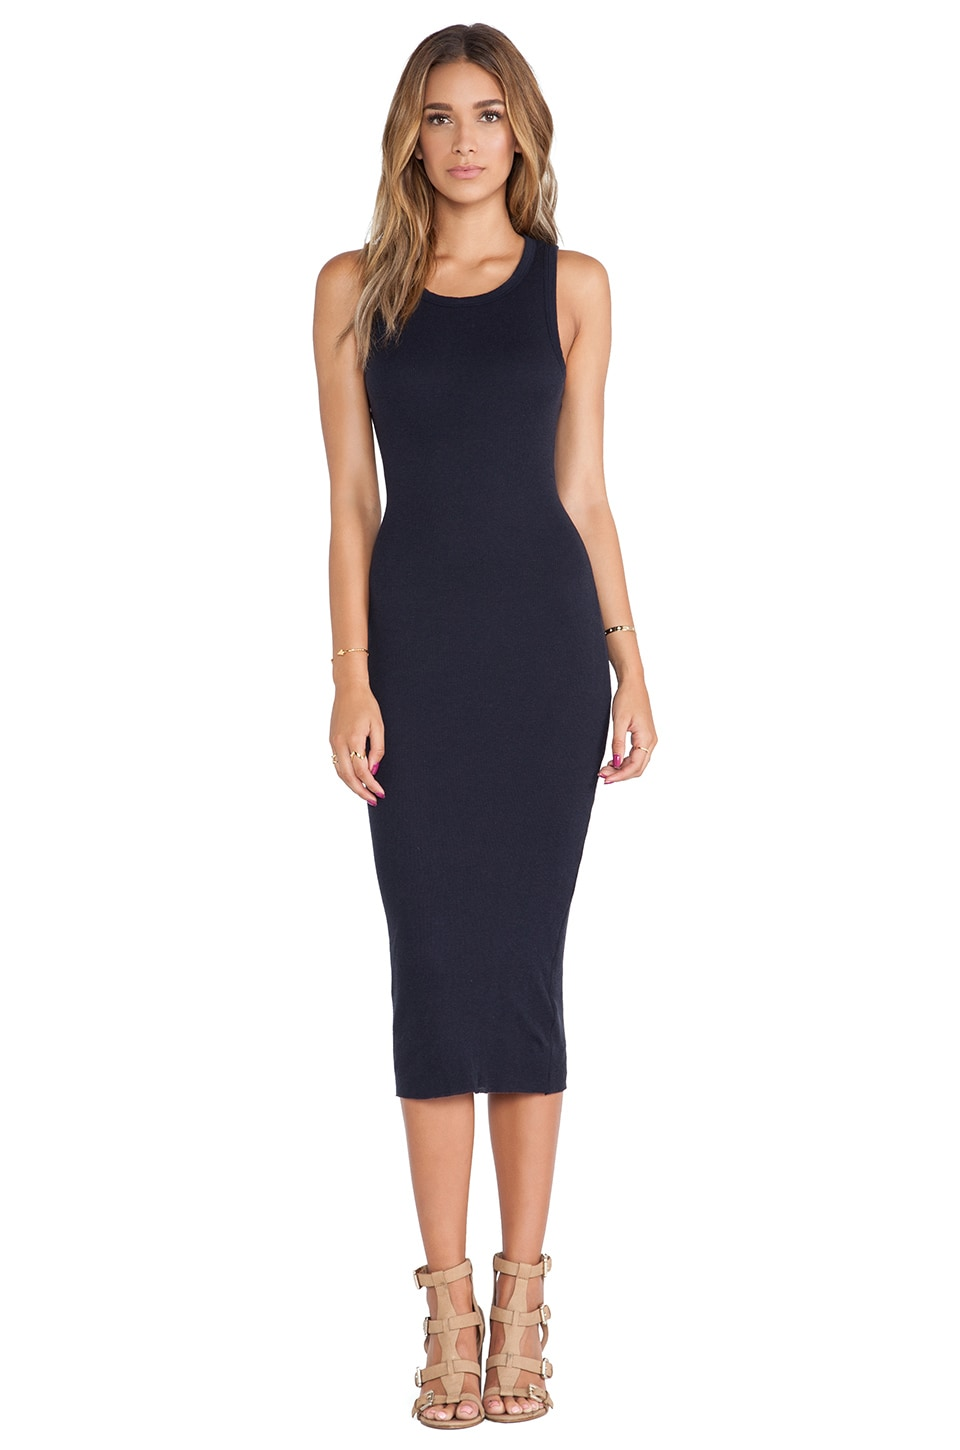 James Perse Cashmere Rib Tank Dress in Deep